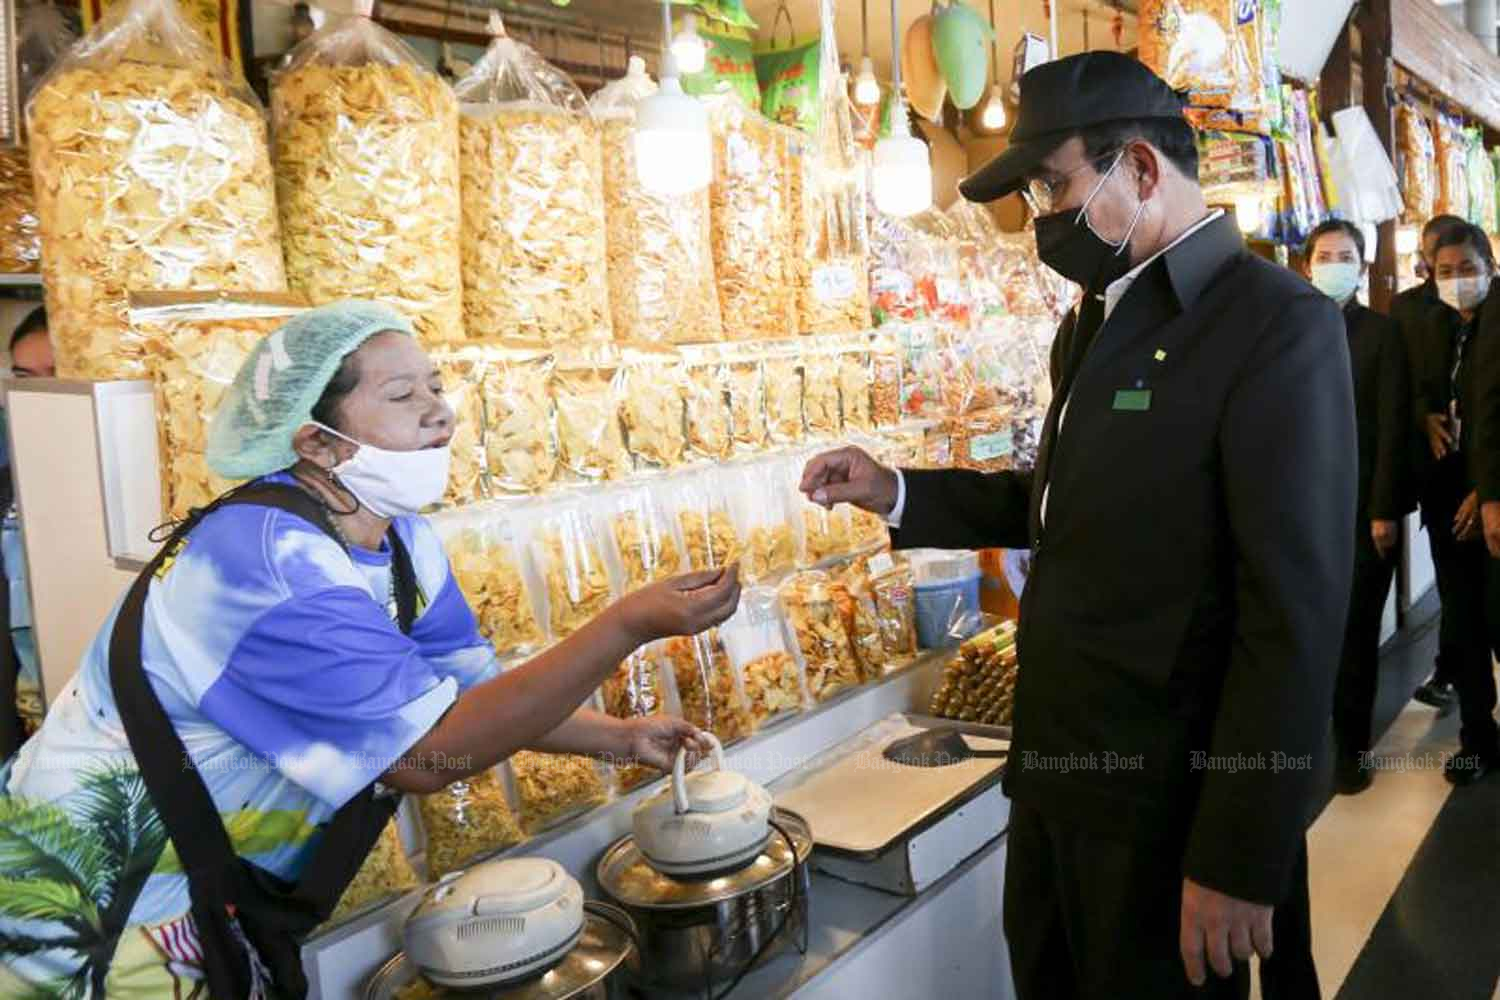 Prime Minister Prayut Chan-o-cha tries durian chips during his visit to Rayong province on Tuesday. He said the country needed to welcome back foreign tourists, for the survival of its economy. (Photo by Pattarapong Chatpattarasill)